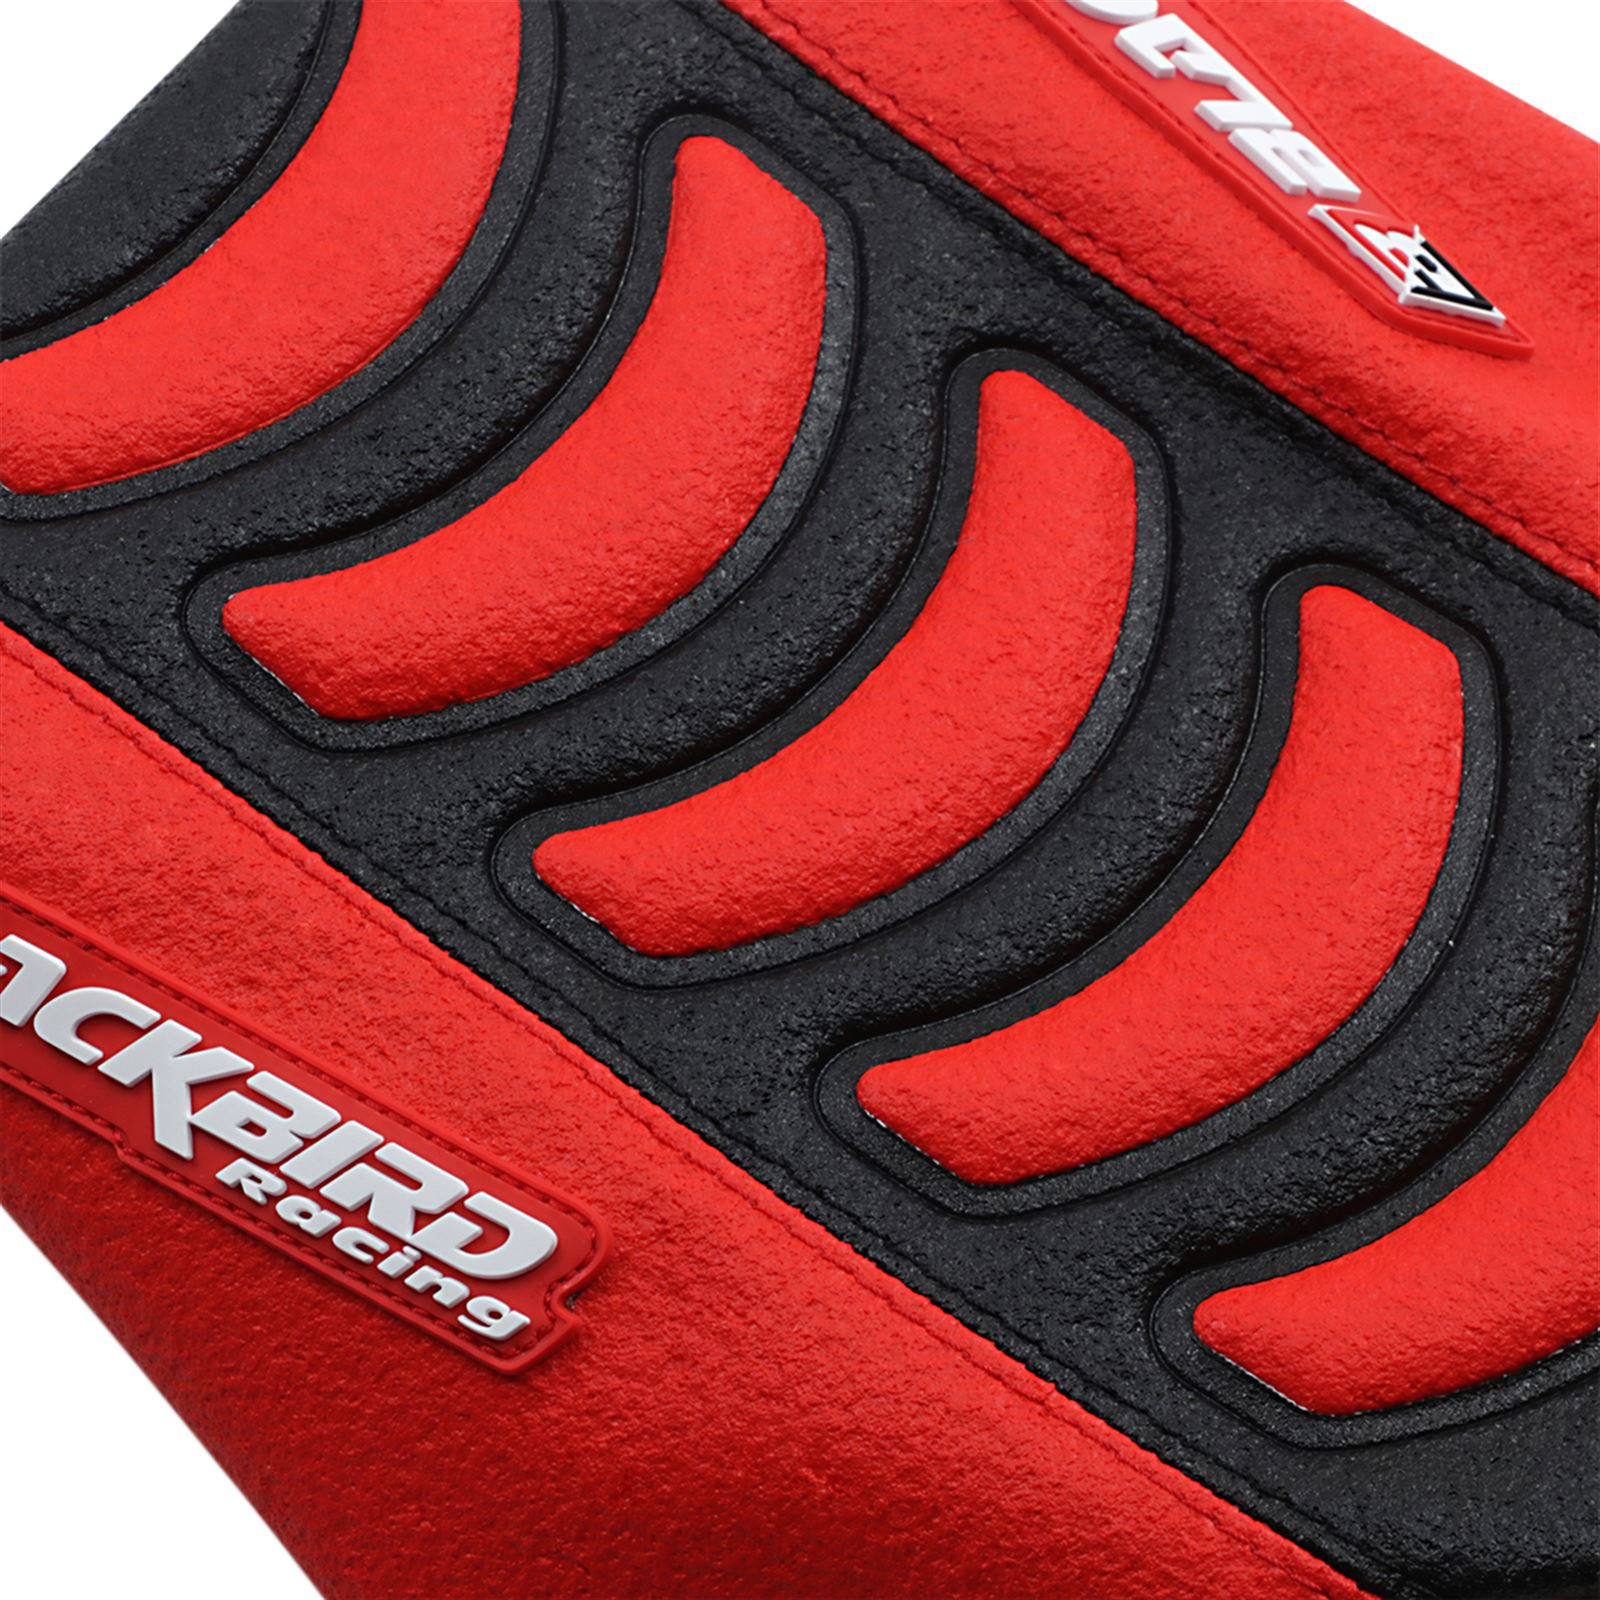 Blackbird Racing Double Grip 3 Seat Cover - Black/Red - CRF